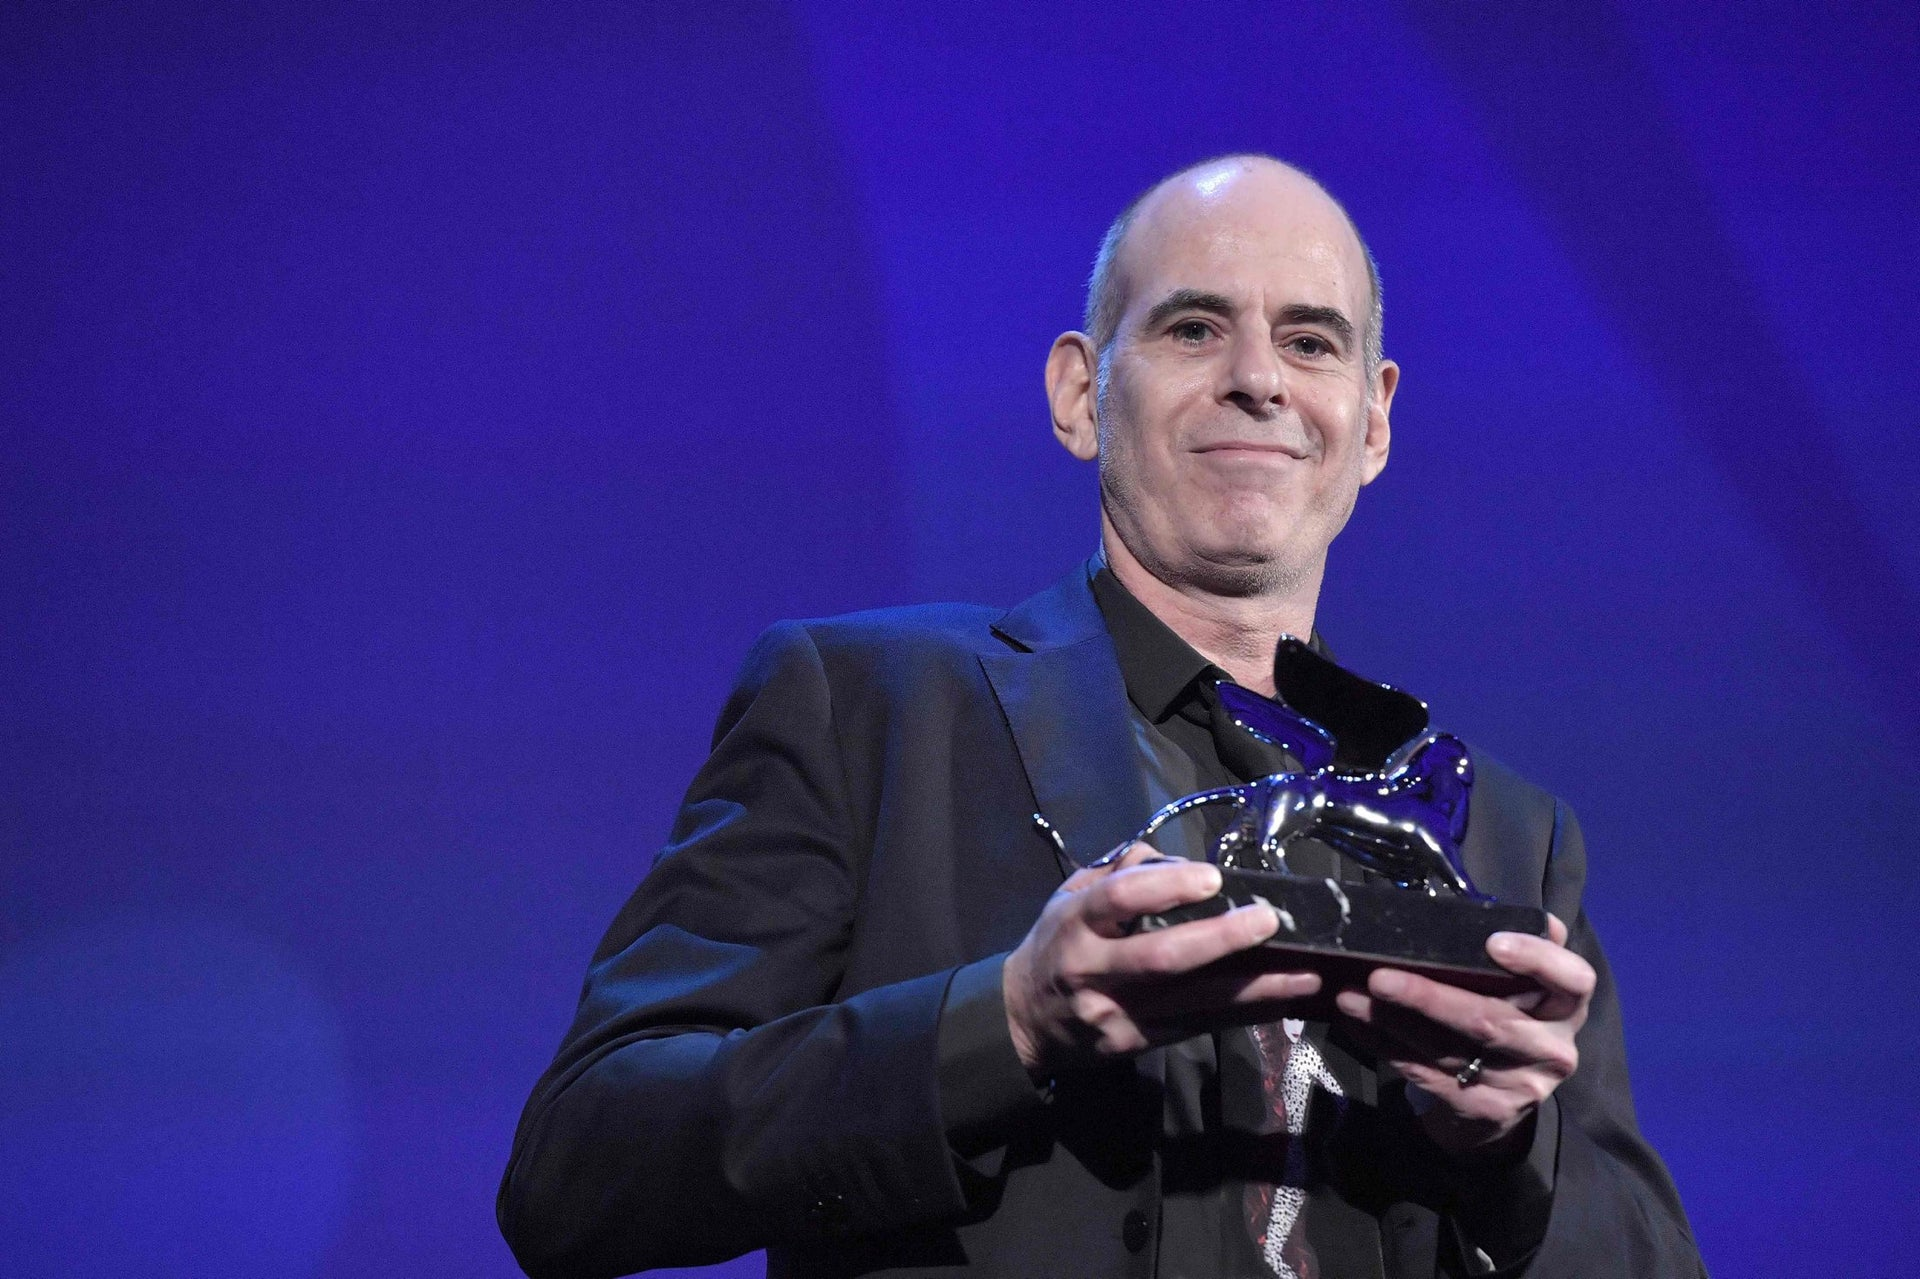 """Samuel Maoz receiving the Silver Lion - Grand Jury Prize for """"Foxtrot"""" during the award ceremony of the 74th Venice Film Festival, September 9, 2017."""